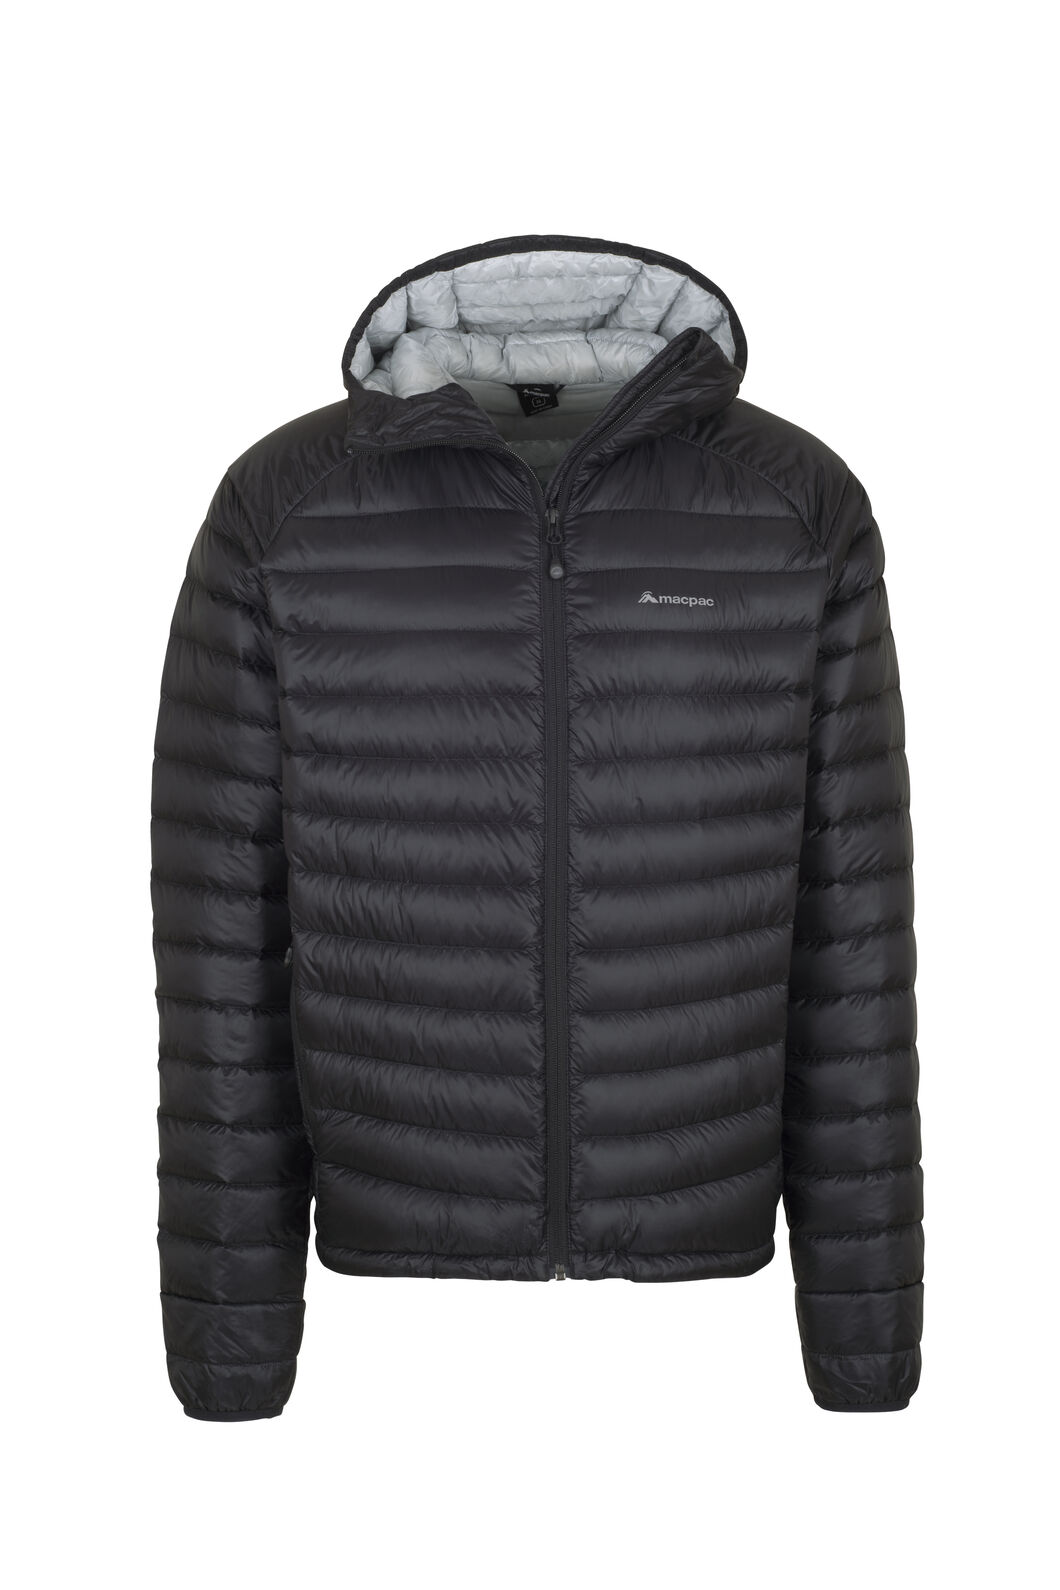 Macpac Icefall HyperDRY™ Hooded Jacket - Men's, Black, hi-res